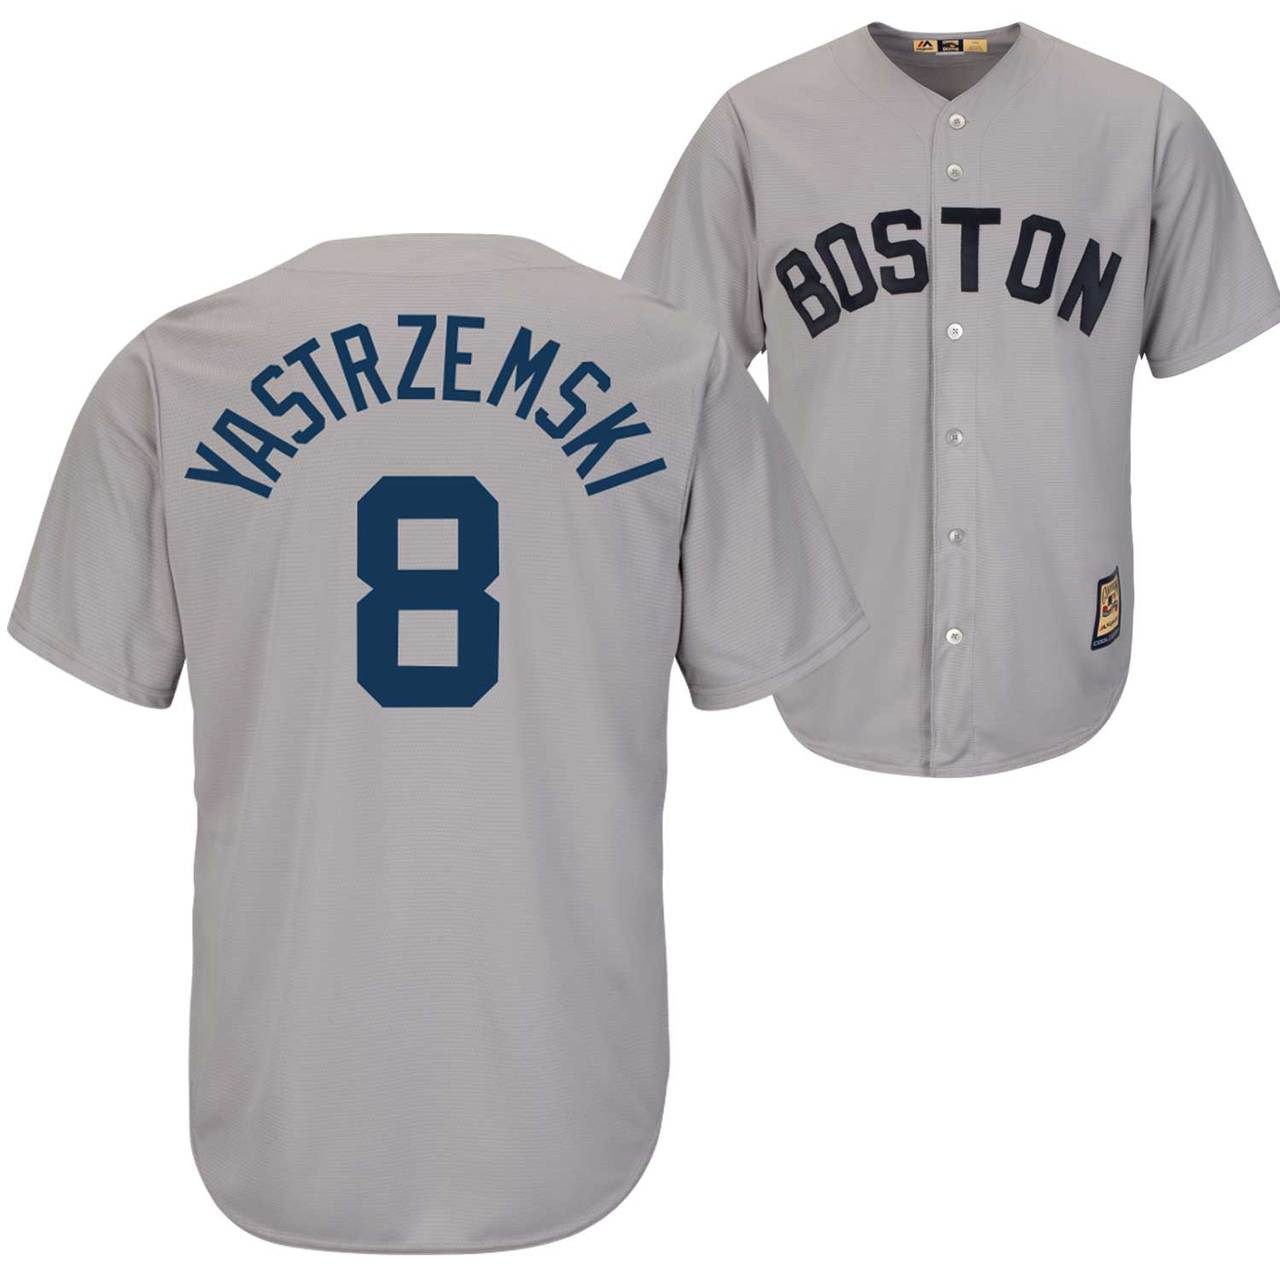 Carl Yastrzemski Jersey - Boston Red Sox Cooperstown Throwback Jersey  Photo. Loading zoom 861a2cefc4d